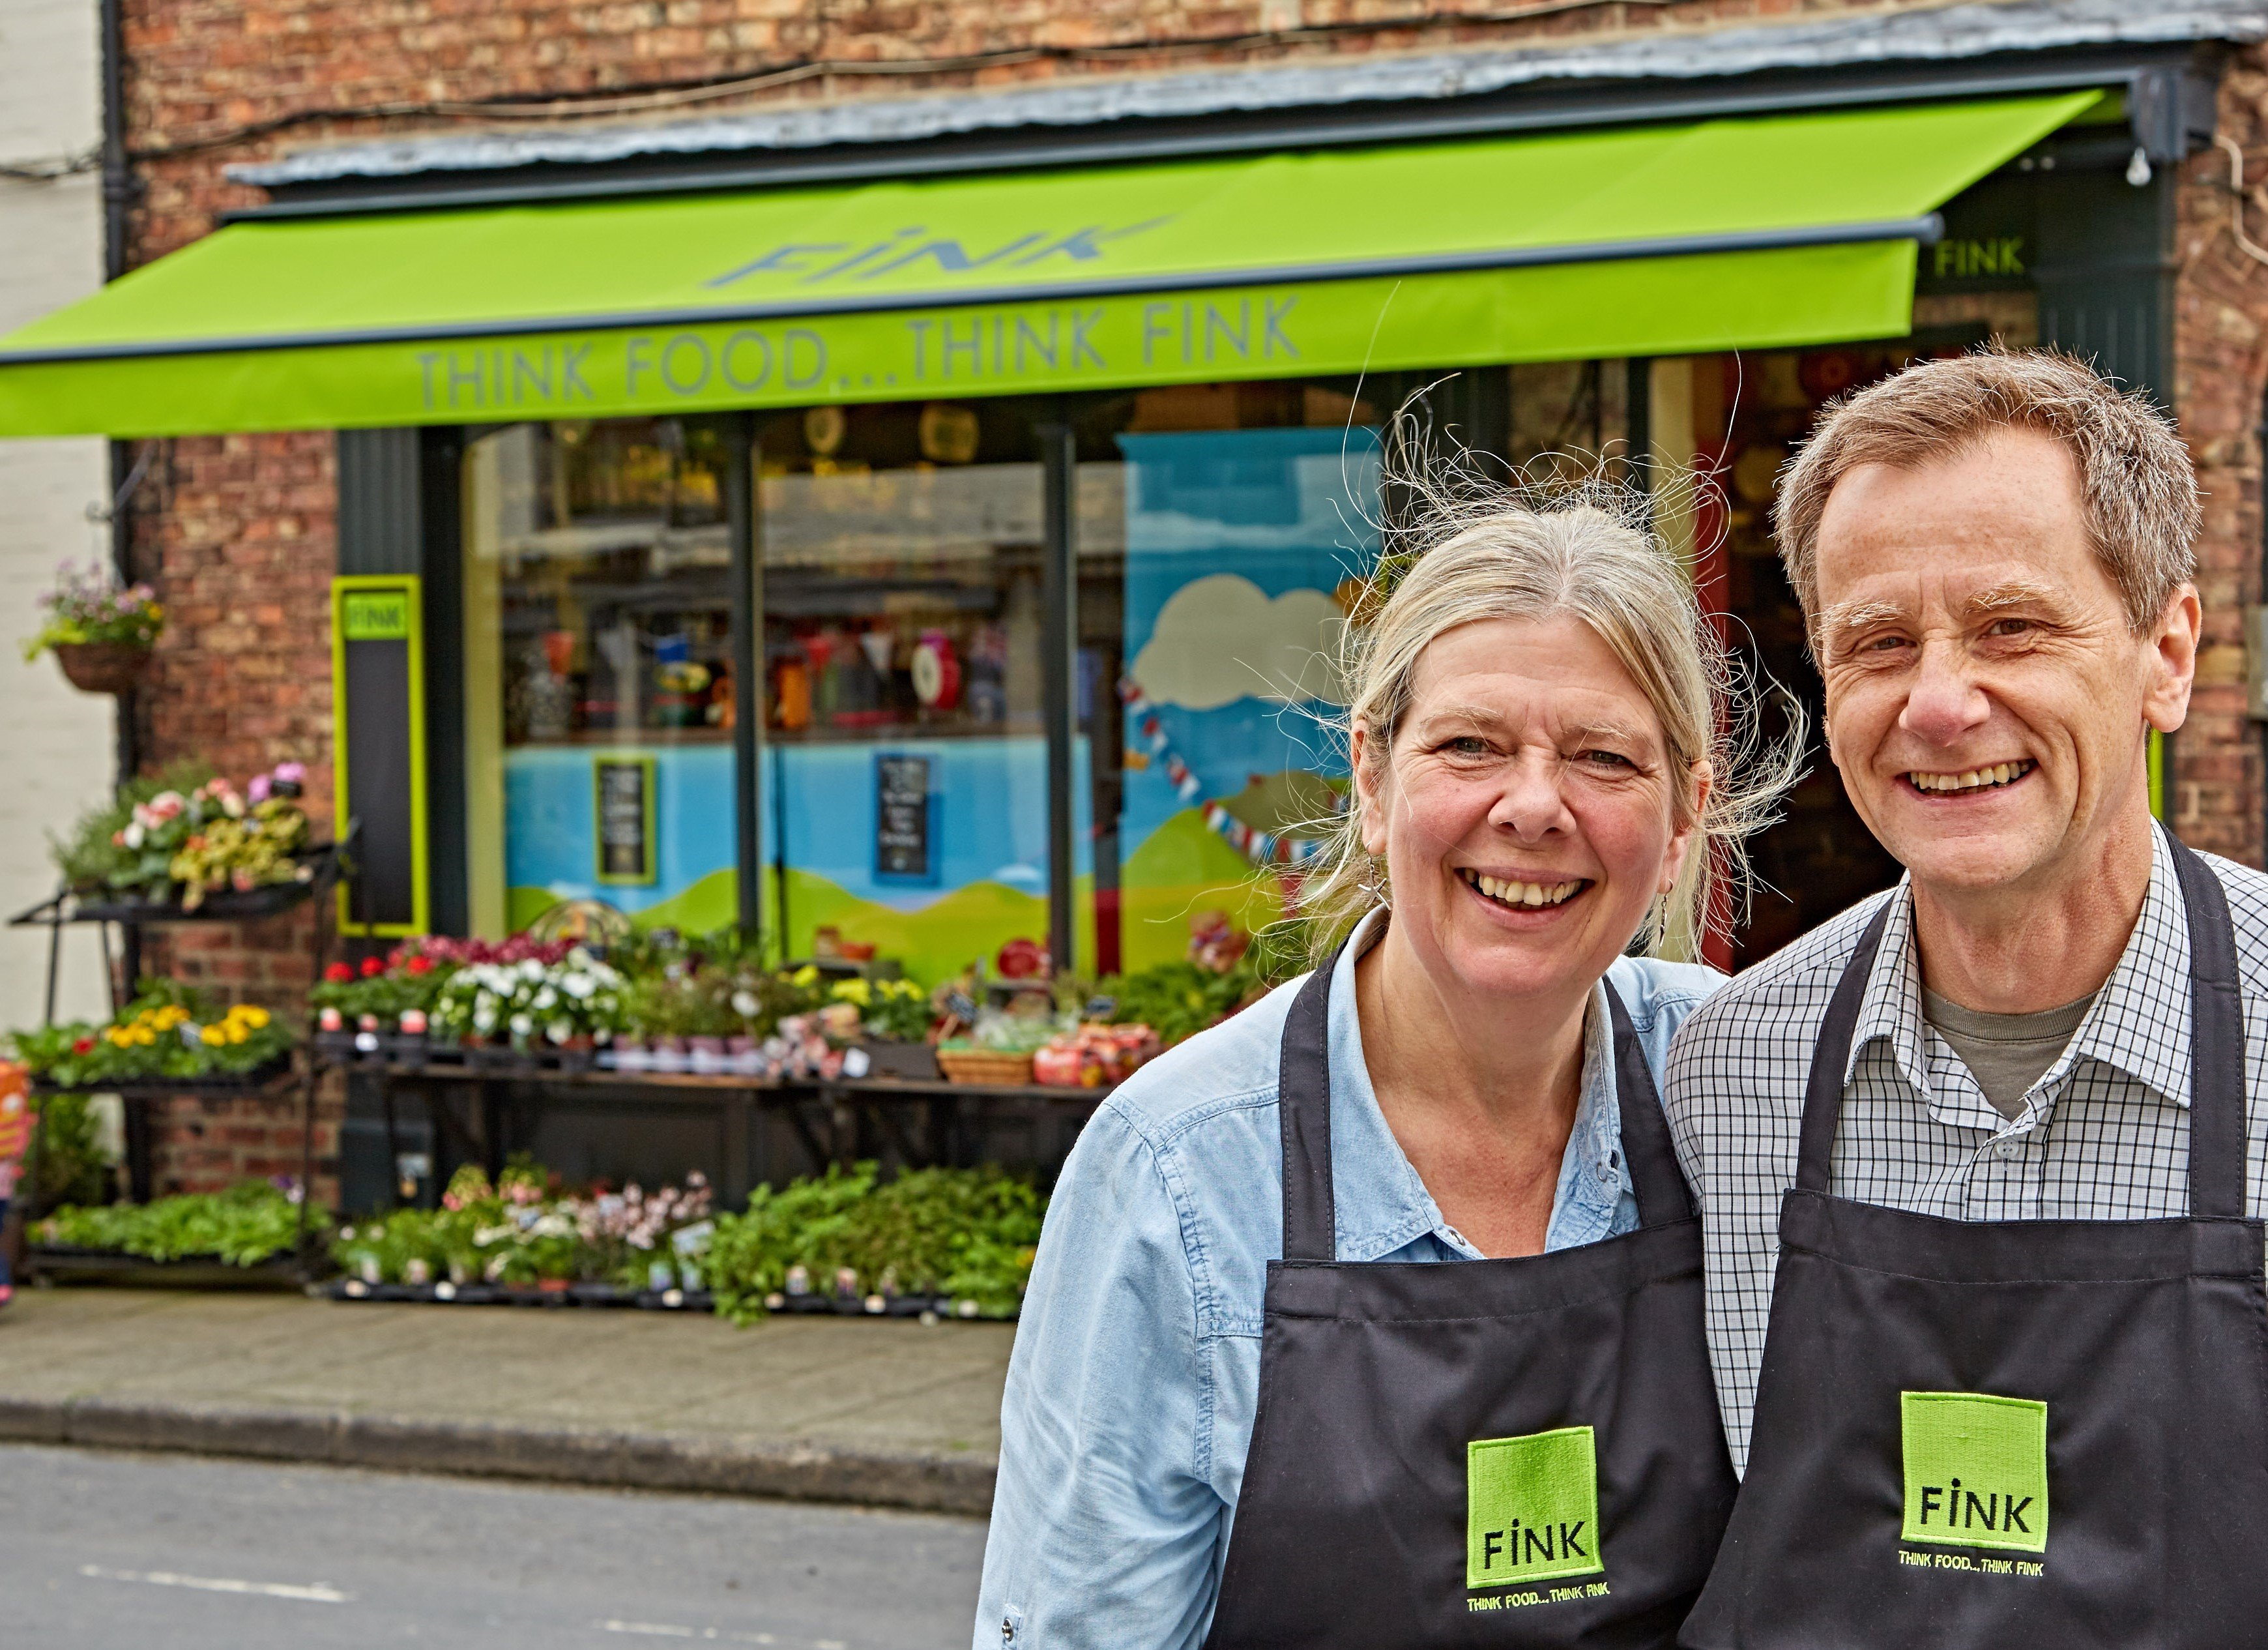 FINK, fine foods specialist in Boroughbridge, was nominated in the Village Shop/Local Store of the Year.